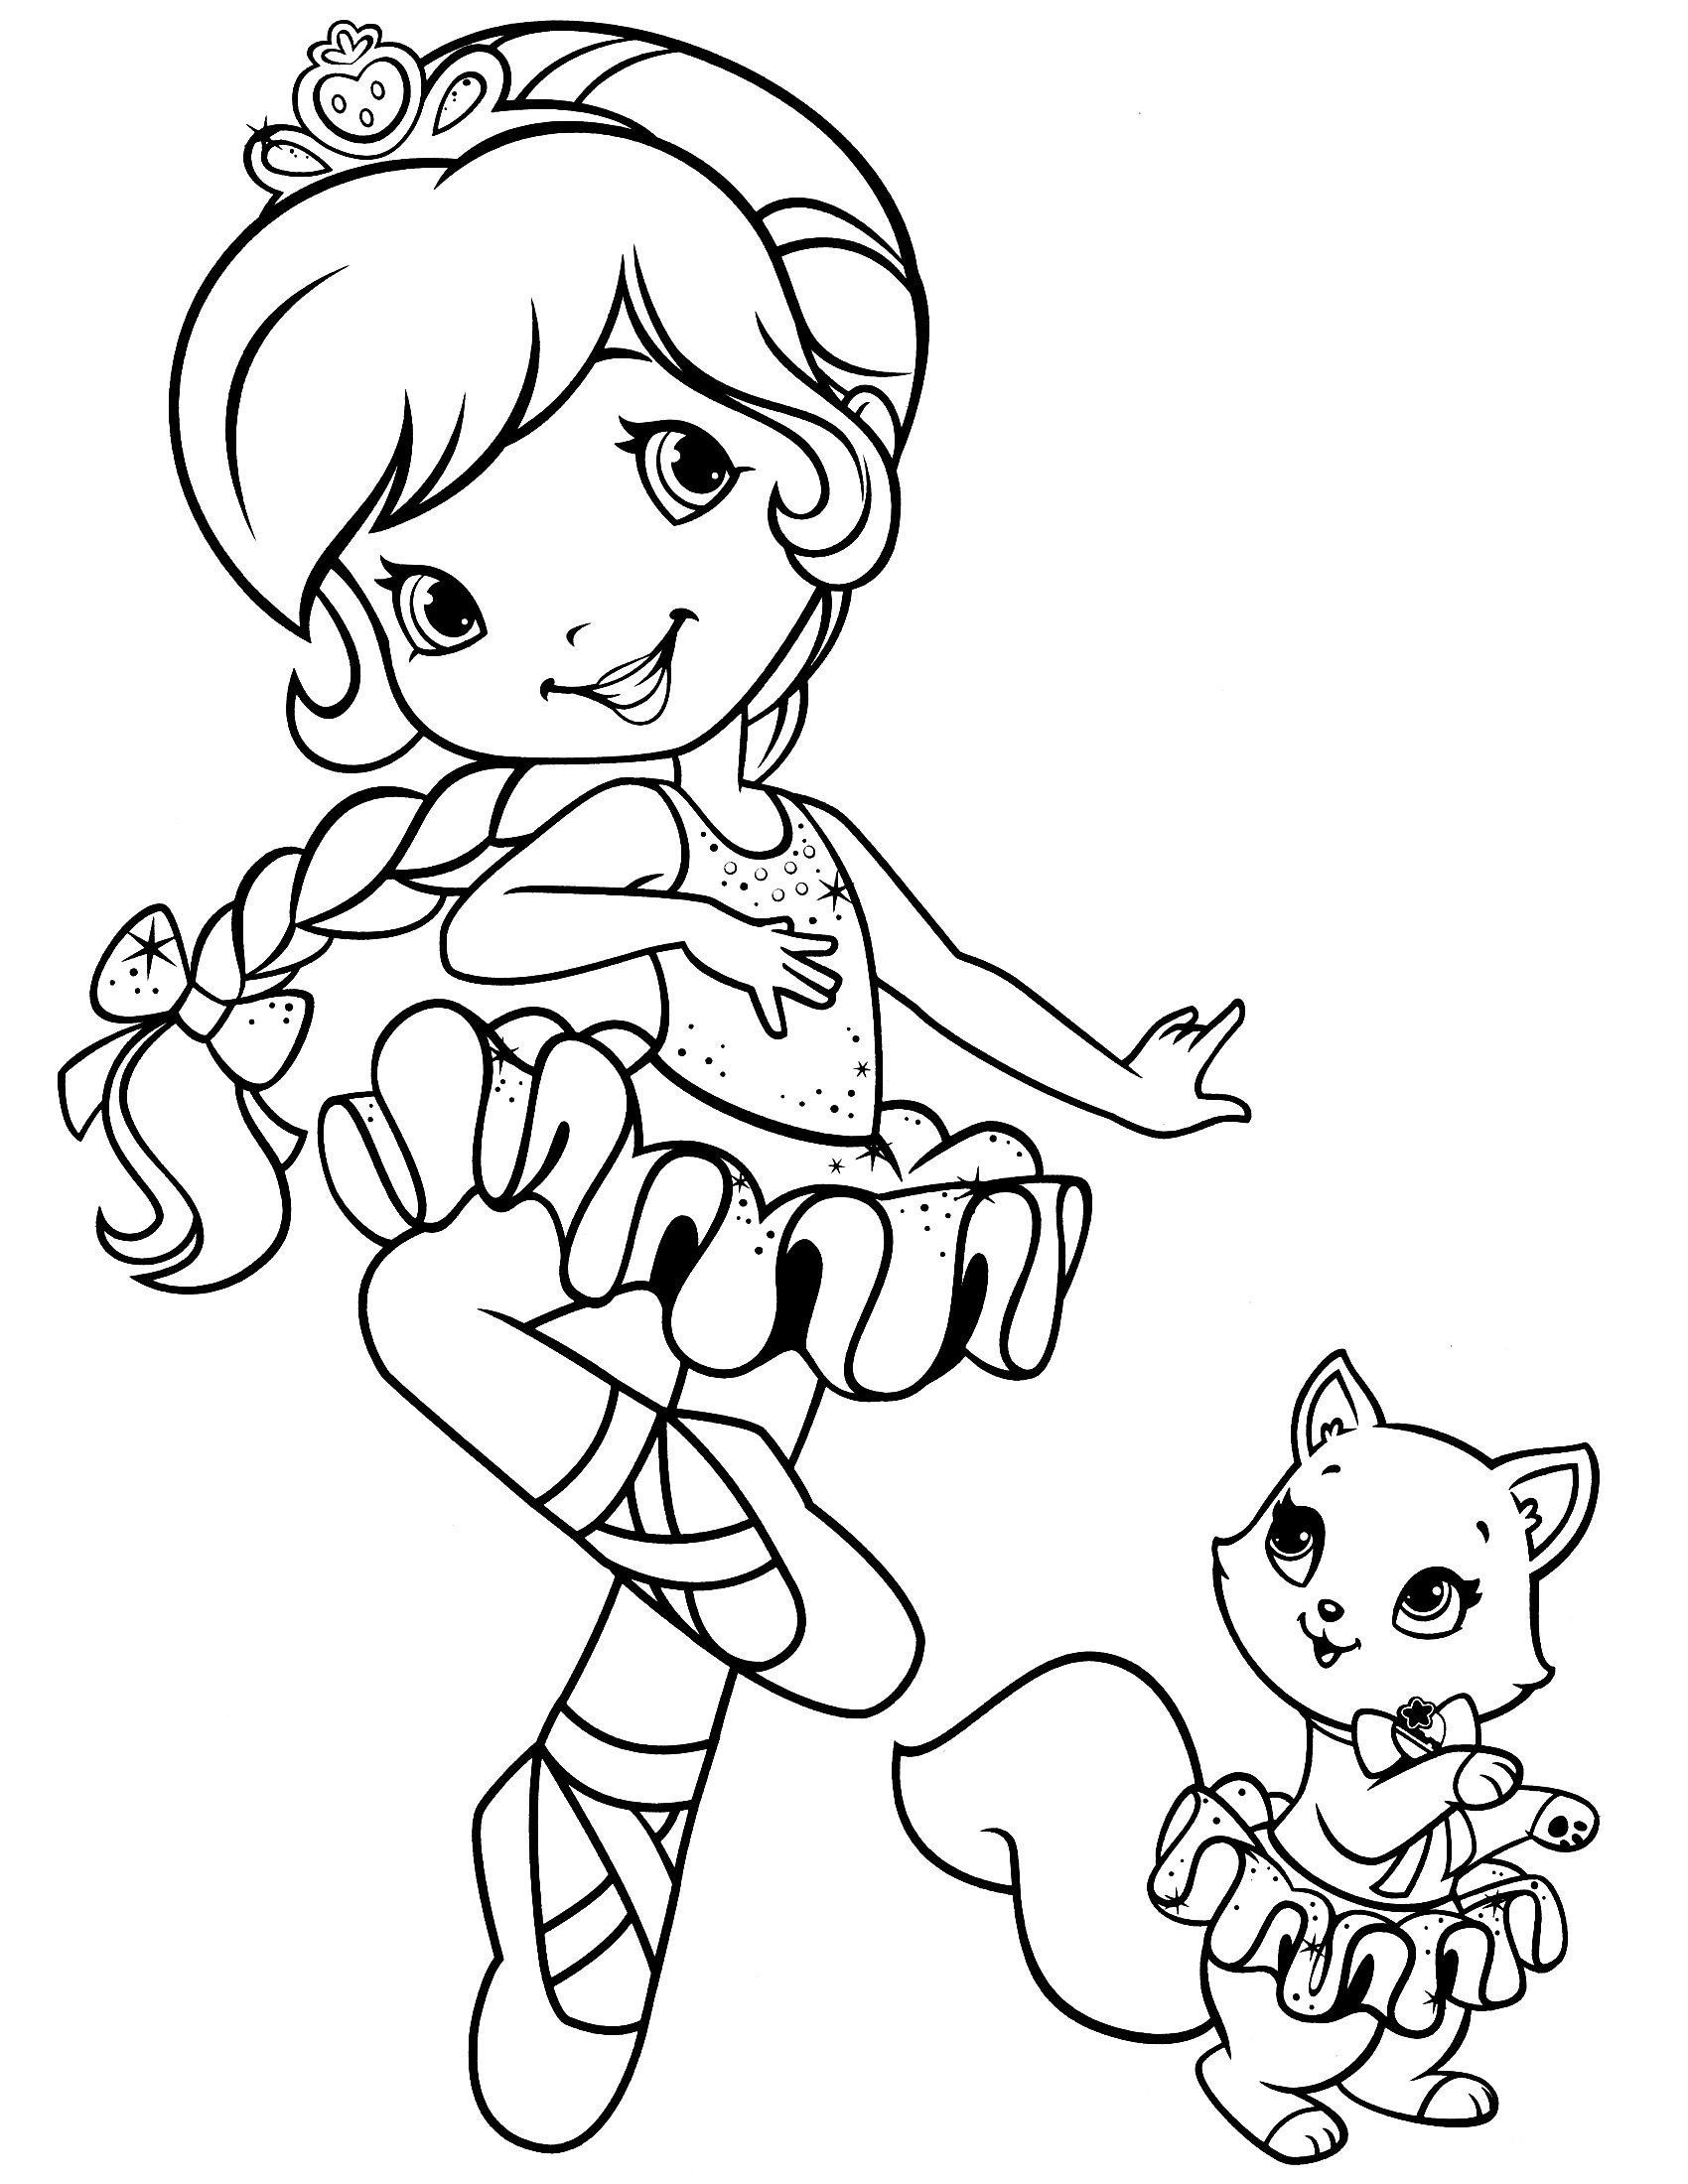 Strawberry Shortcake Coloring Page New Pupcake Strawberry